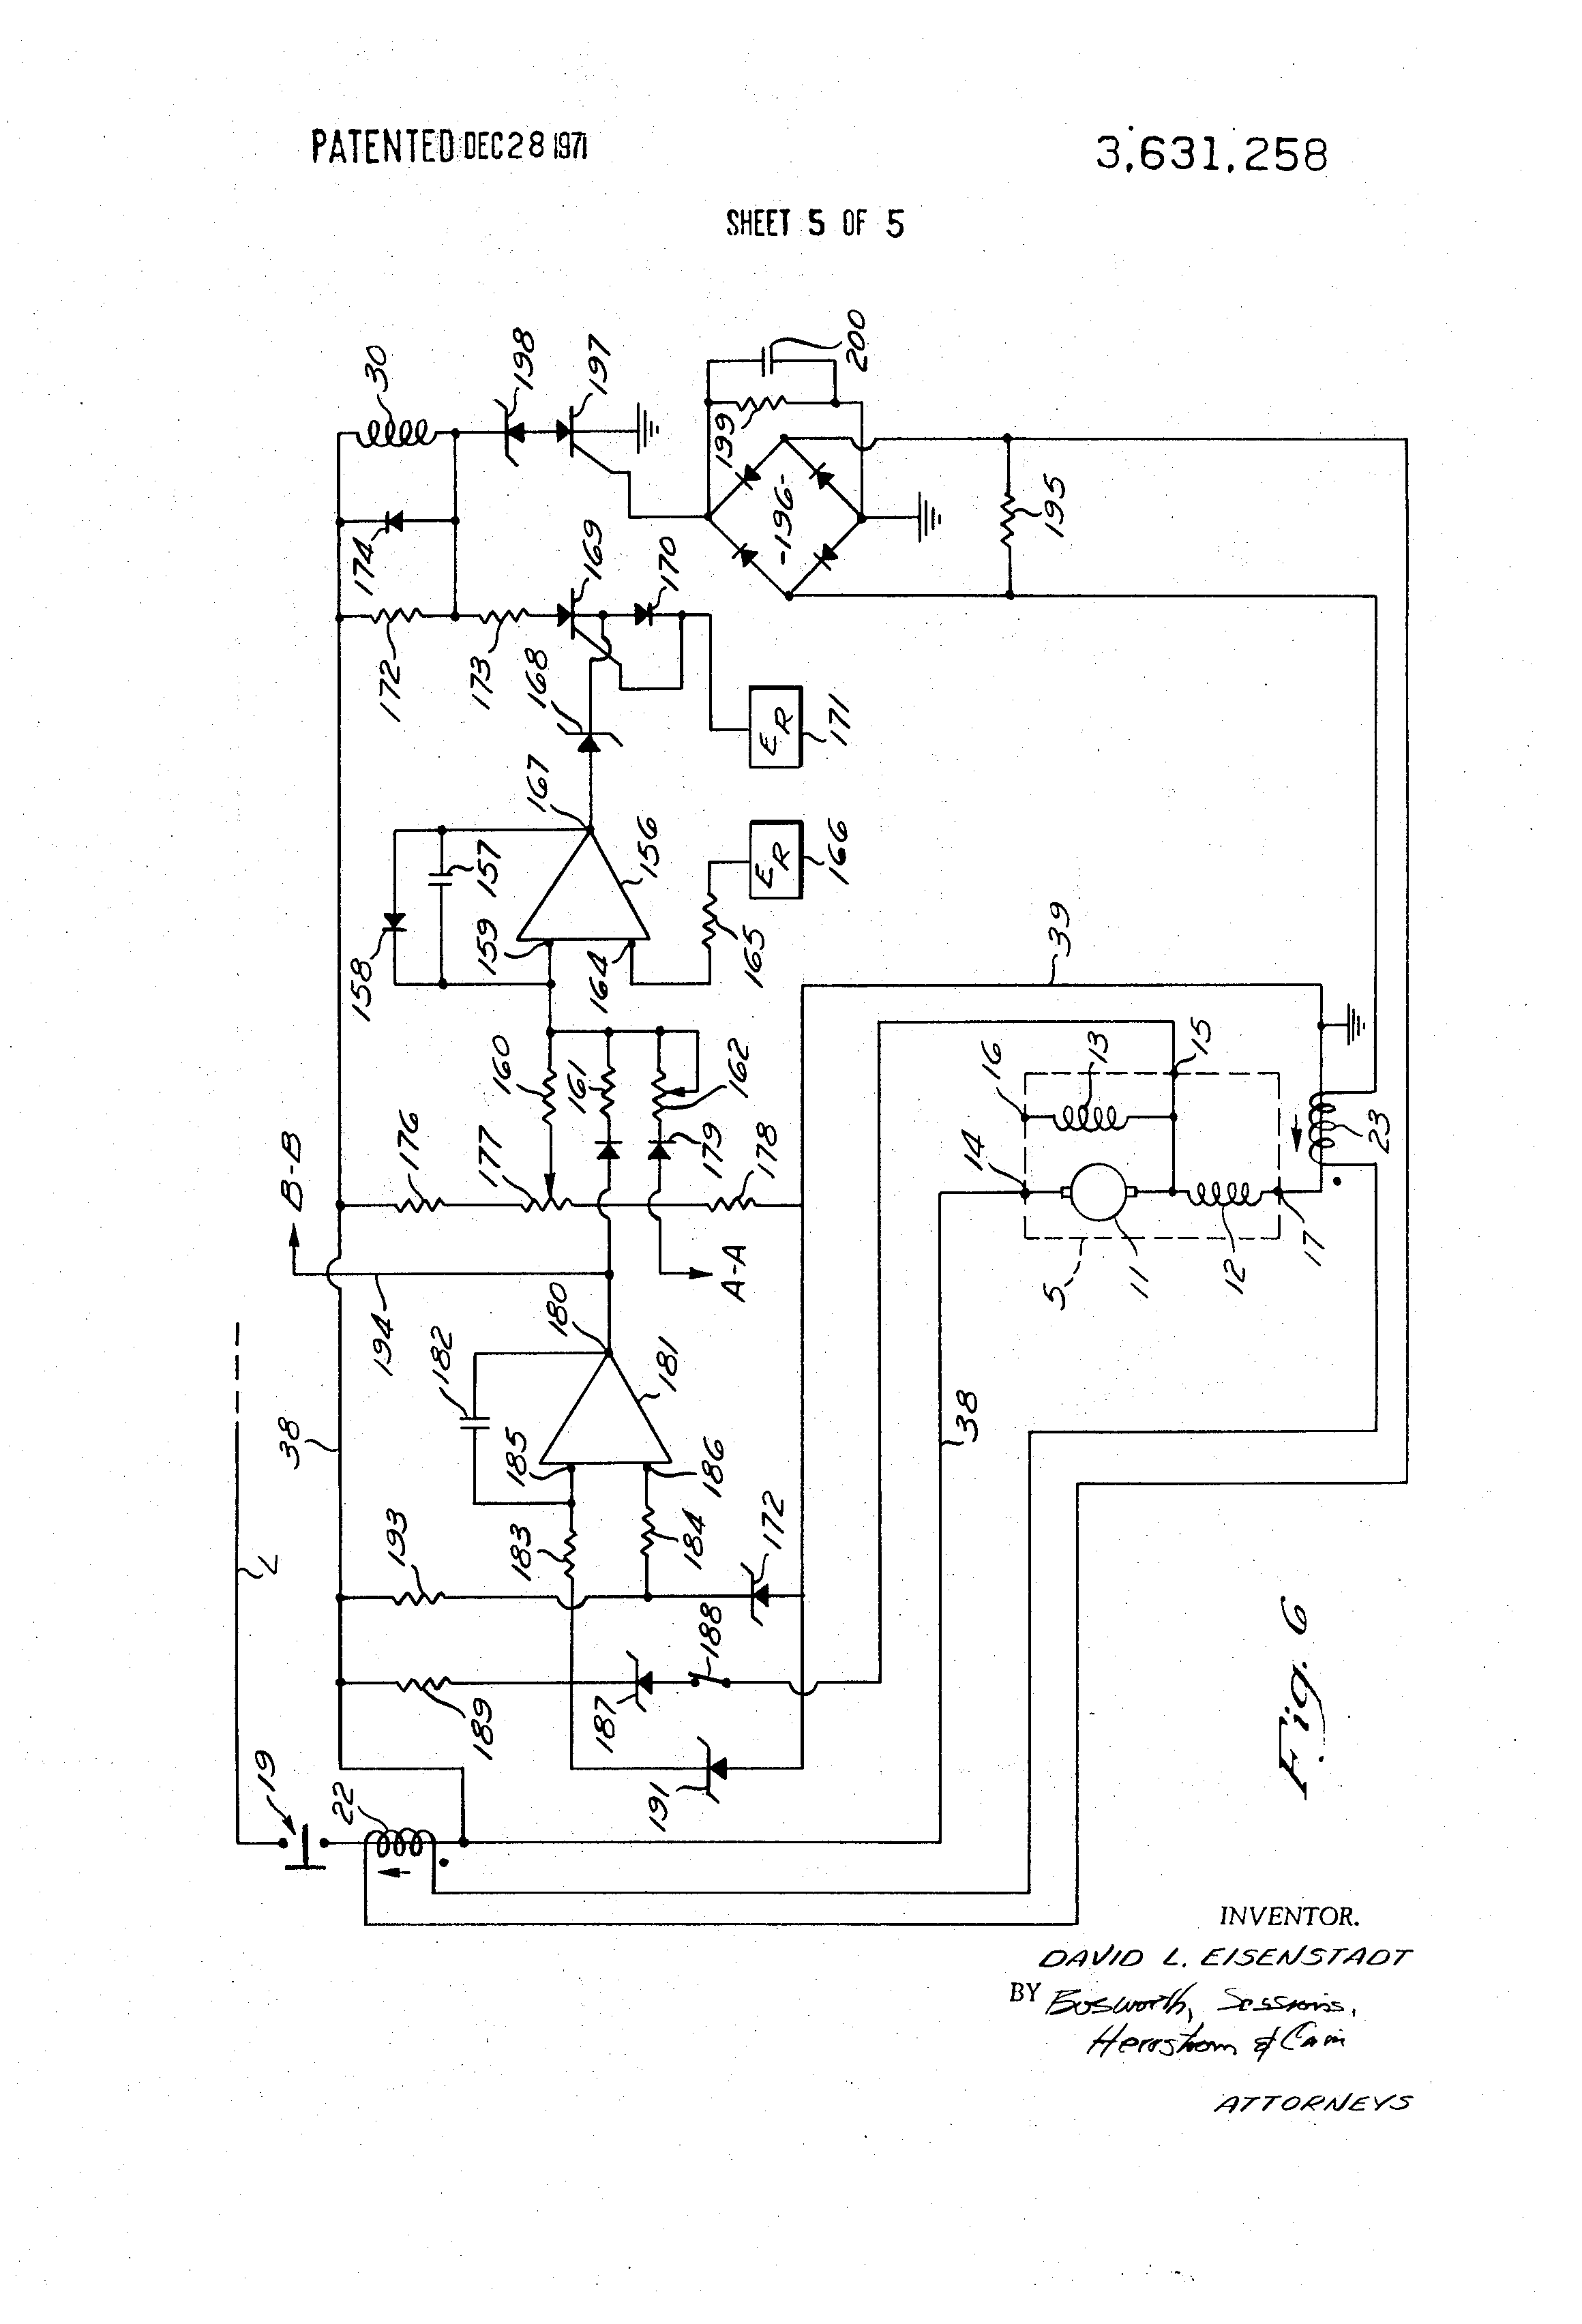 Darlington Pair To Drive Dc Motor Schematic Diagram Wiring Patent Us3631258 Protection And Control Panel With Generator Drawing